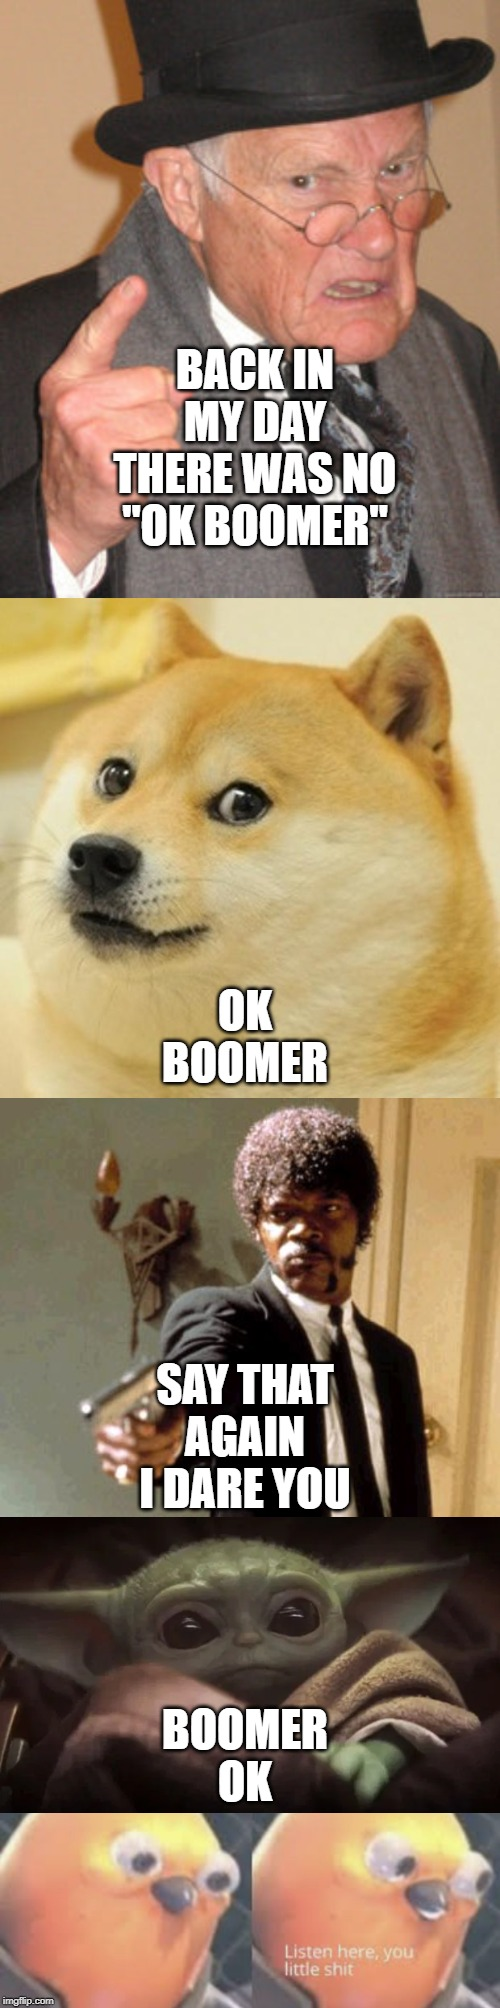 "BACK IN MY DAY THERE WAS NO ""OK BOOMER""; OK BOOMER; SAY THAT AGAIN I DARE YOU; BOOMER OK 